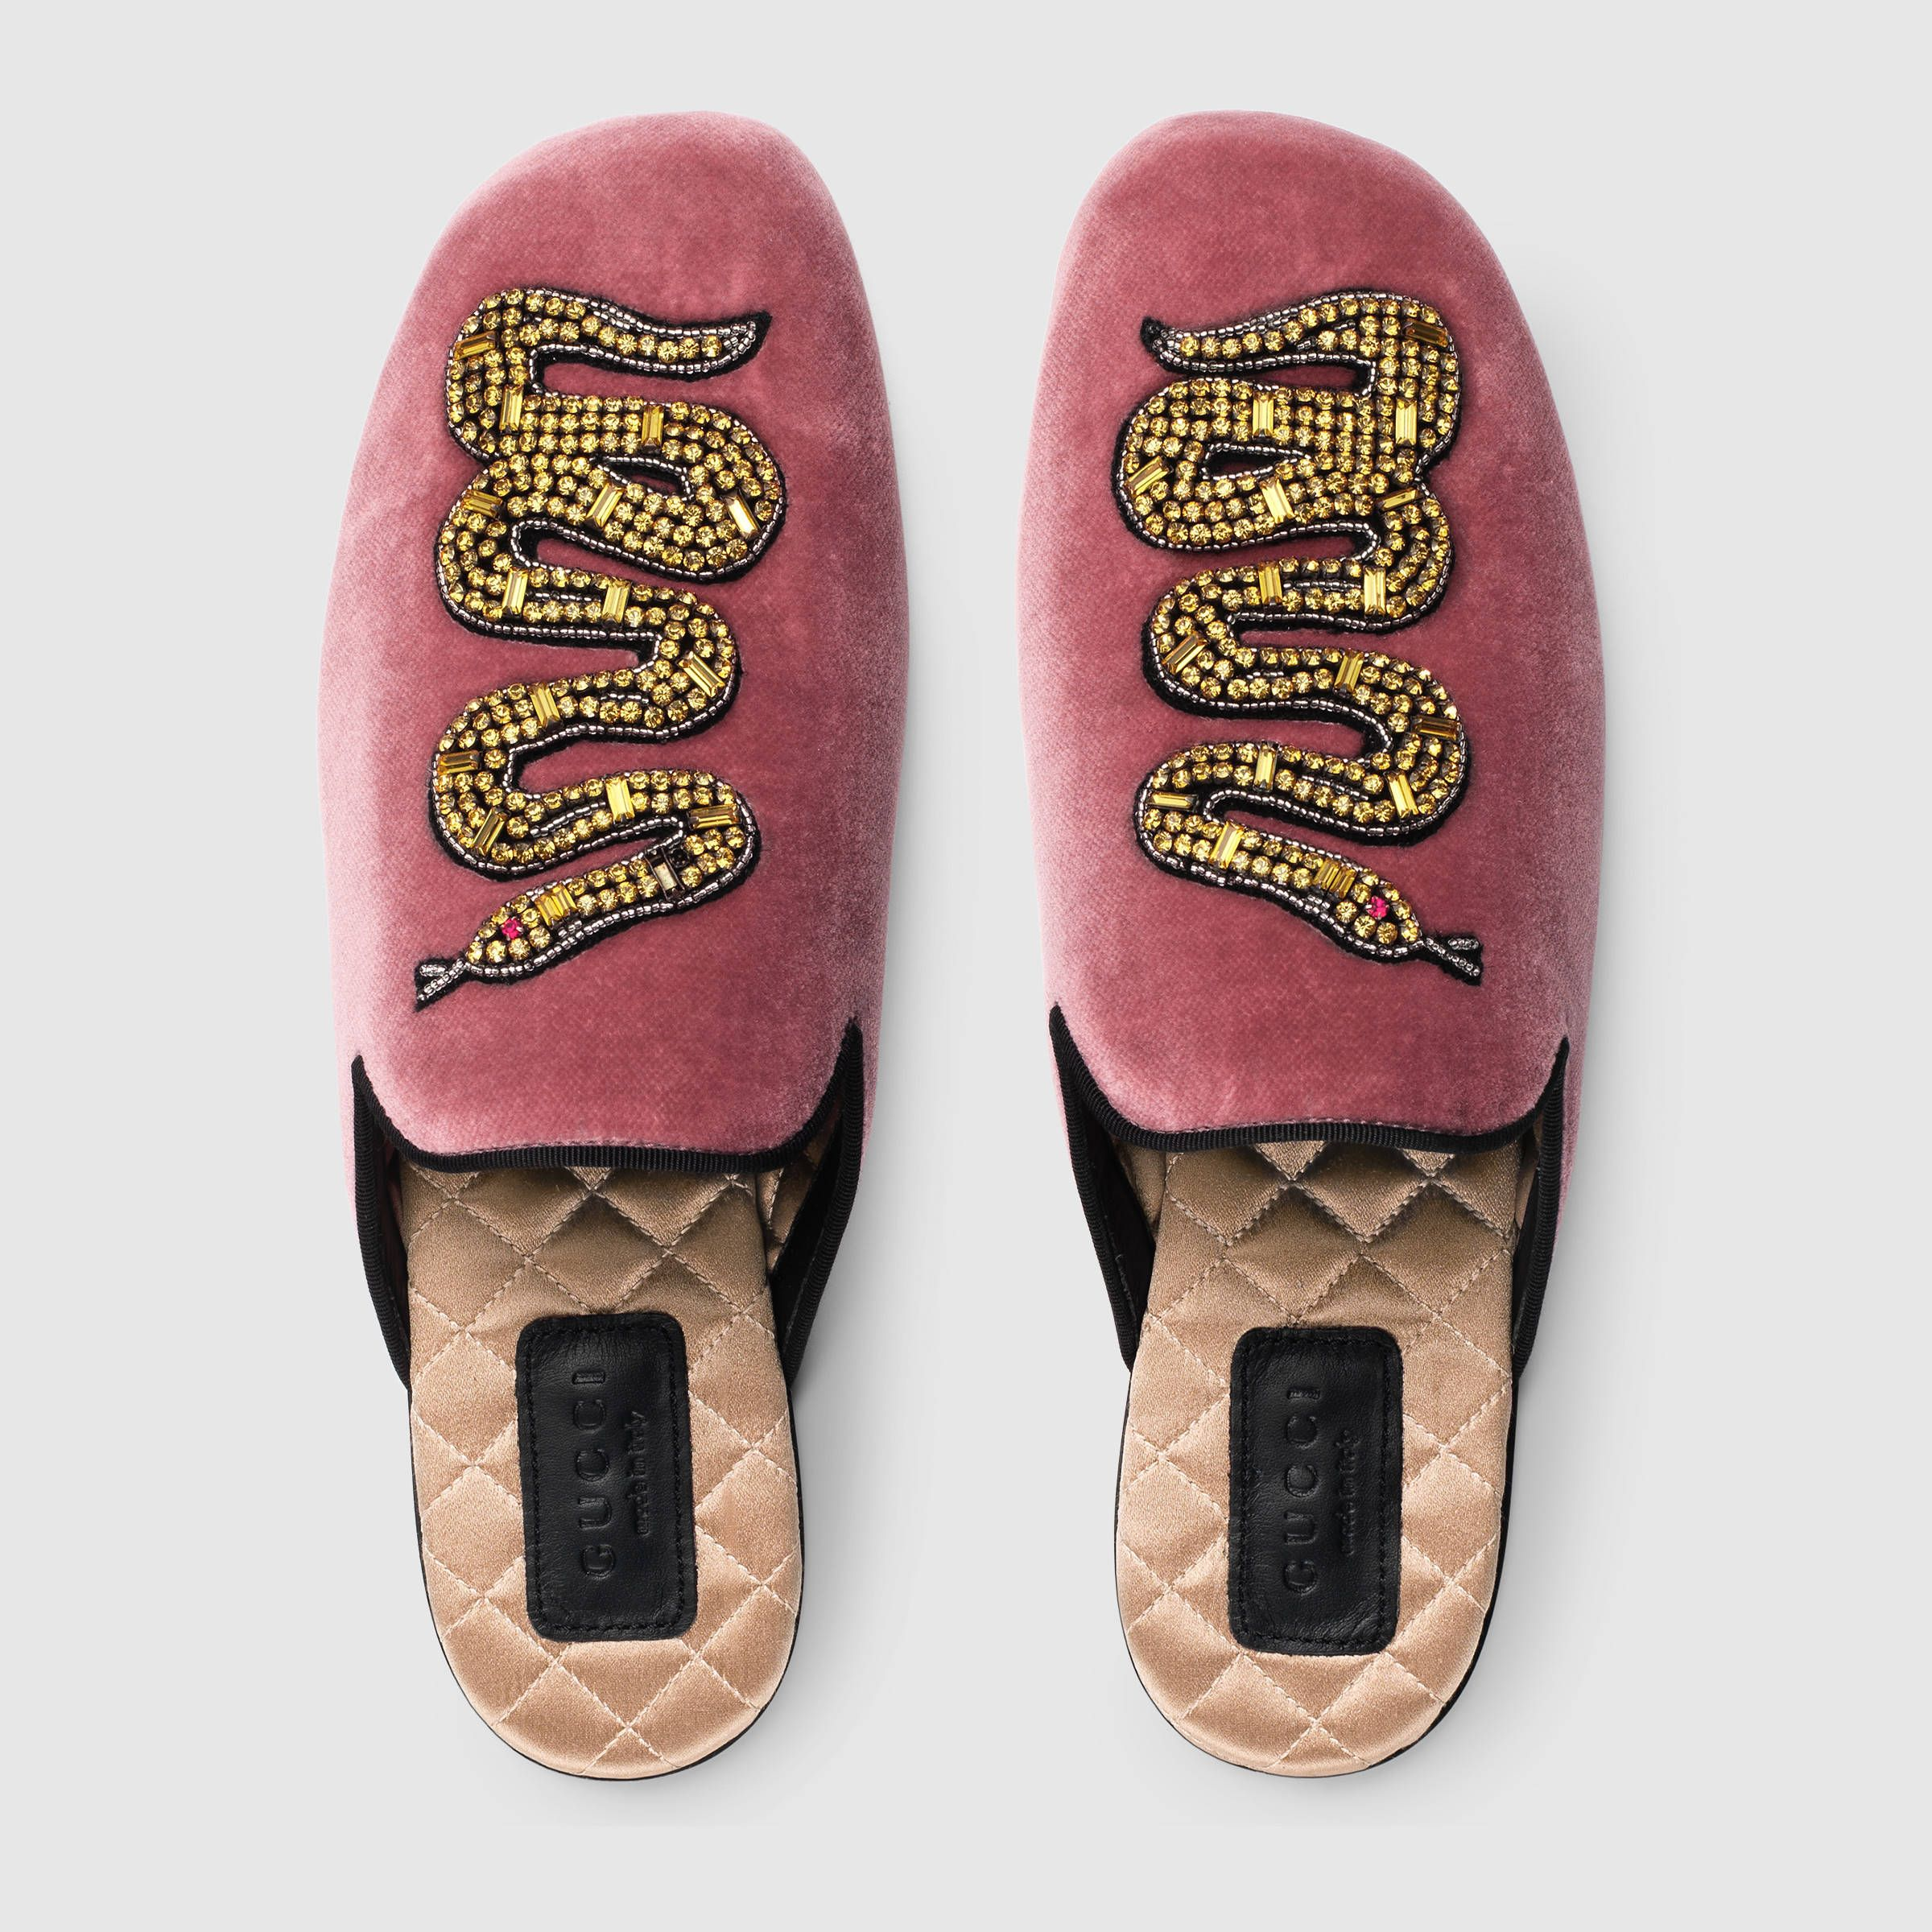 d8b194a5bb Velvet evening slipper with snake - Gucci Women's Moccasins ...